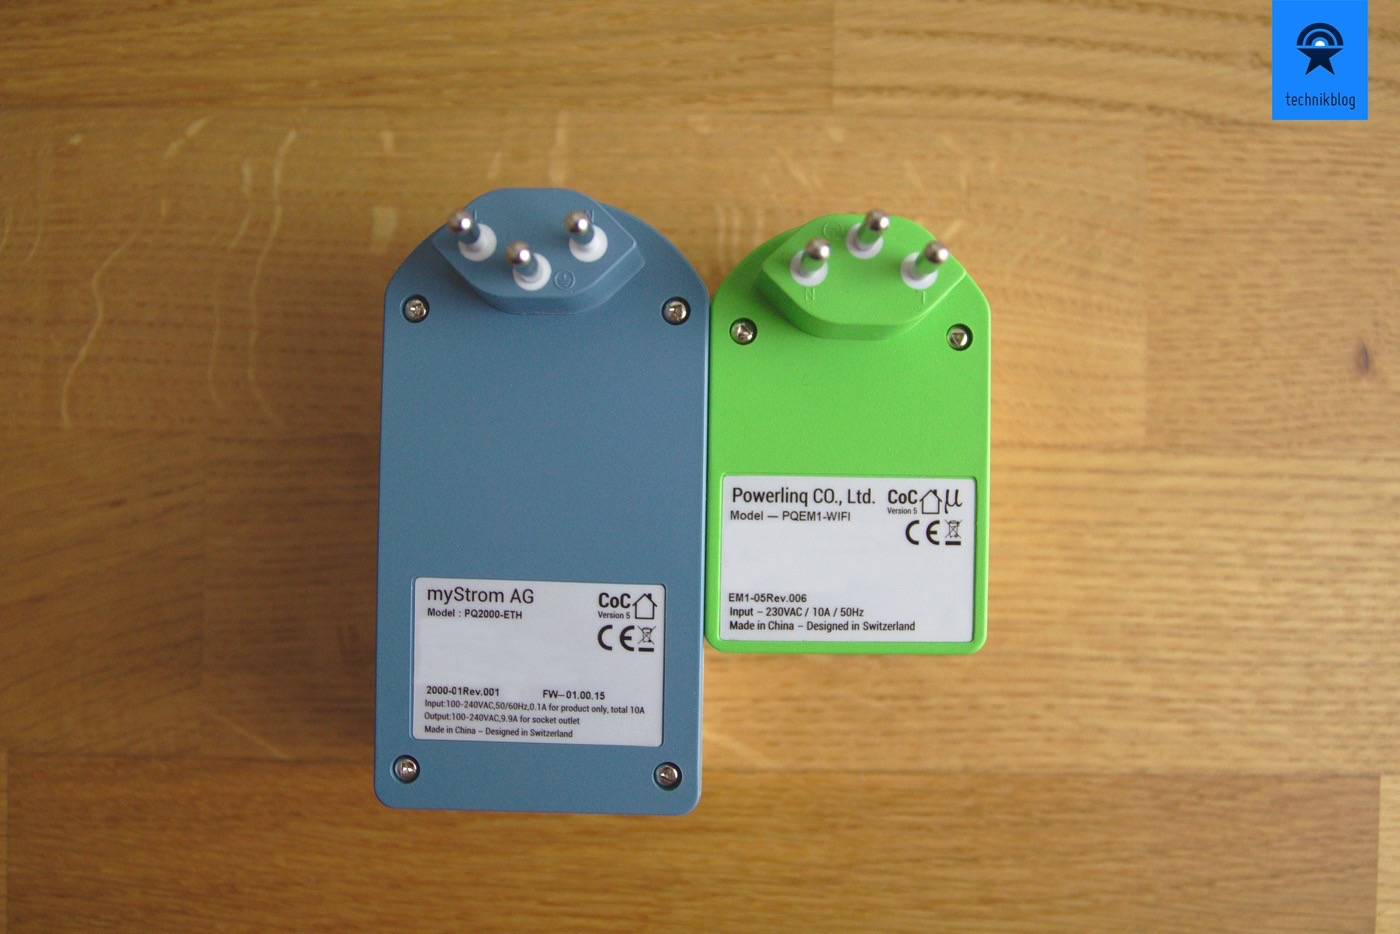 Links: myStrom Powerline 2000 / Rechts: myStrom Switch